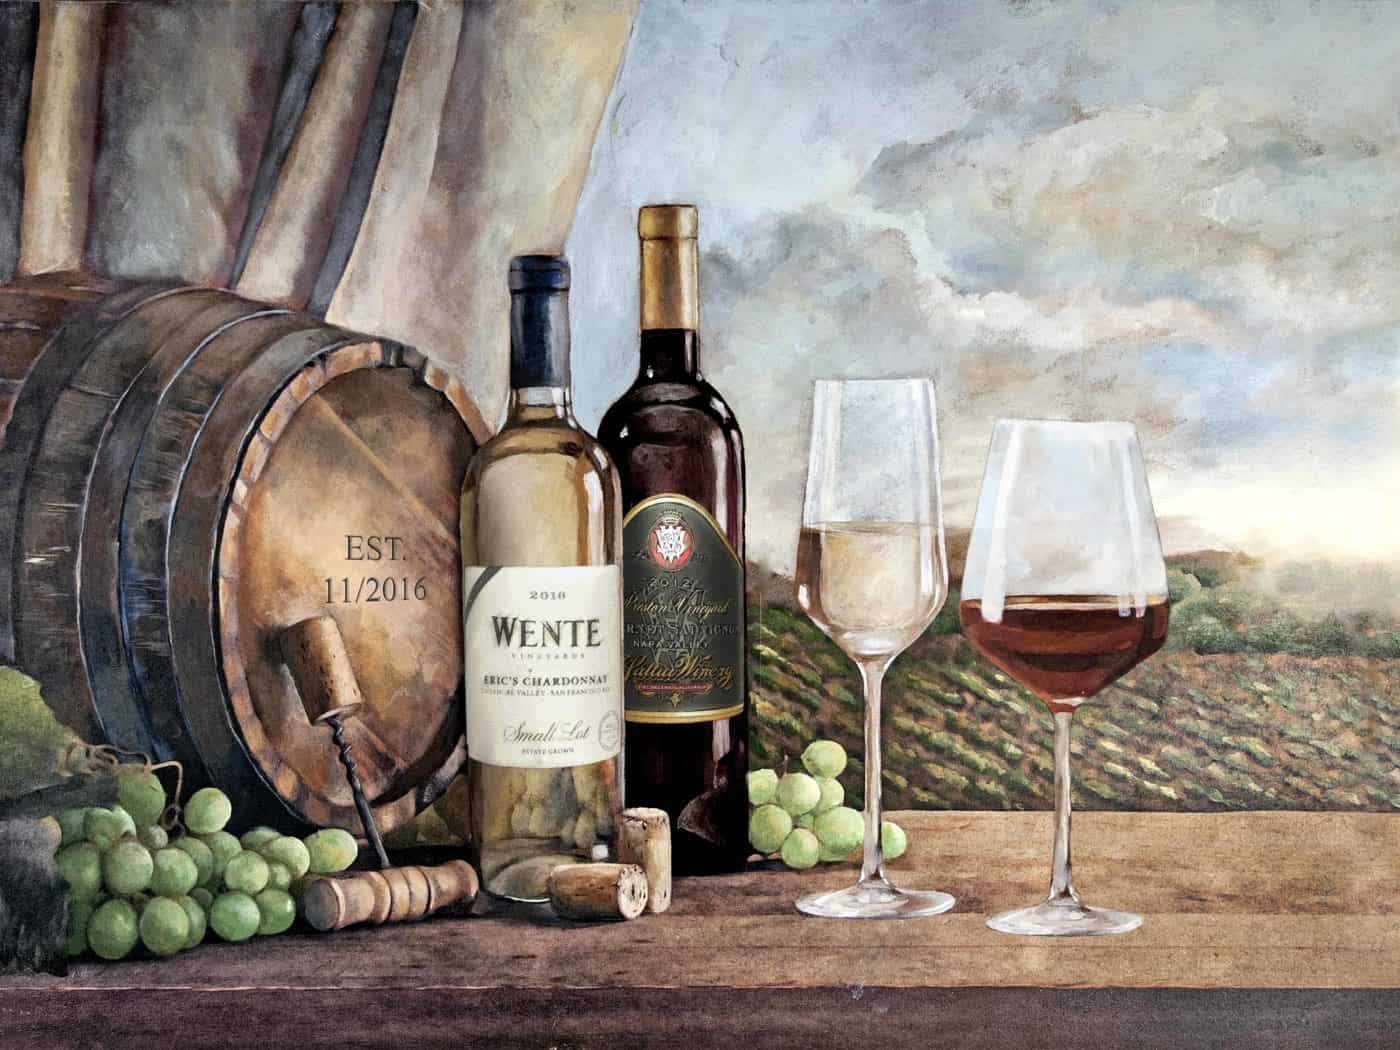 Vin Blanc mural with custom labels